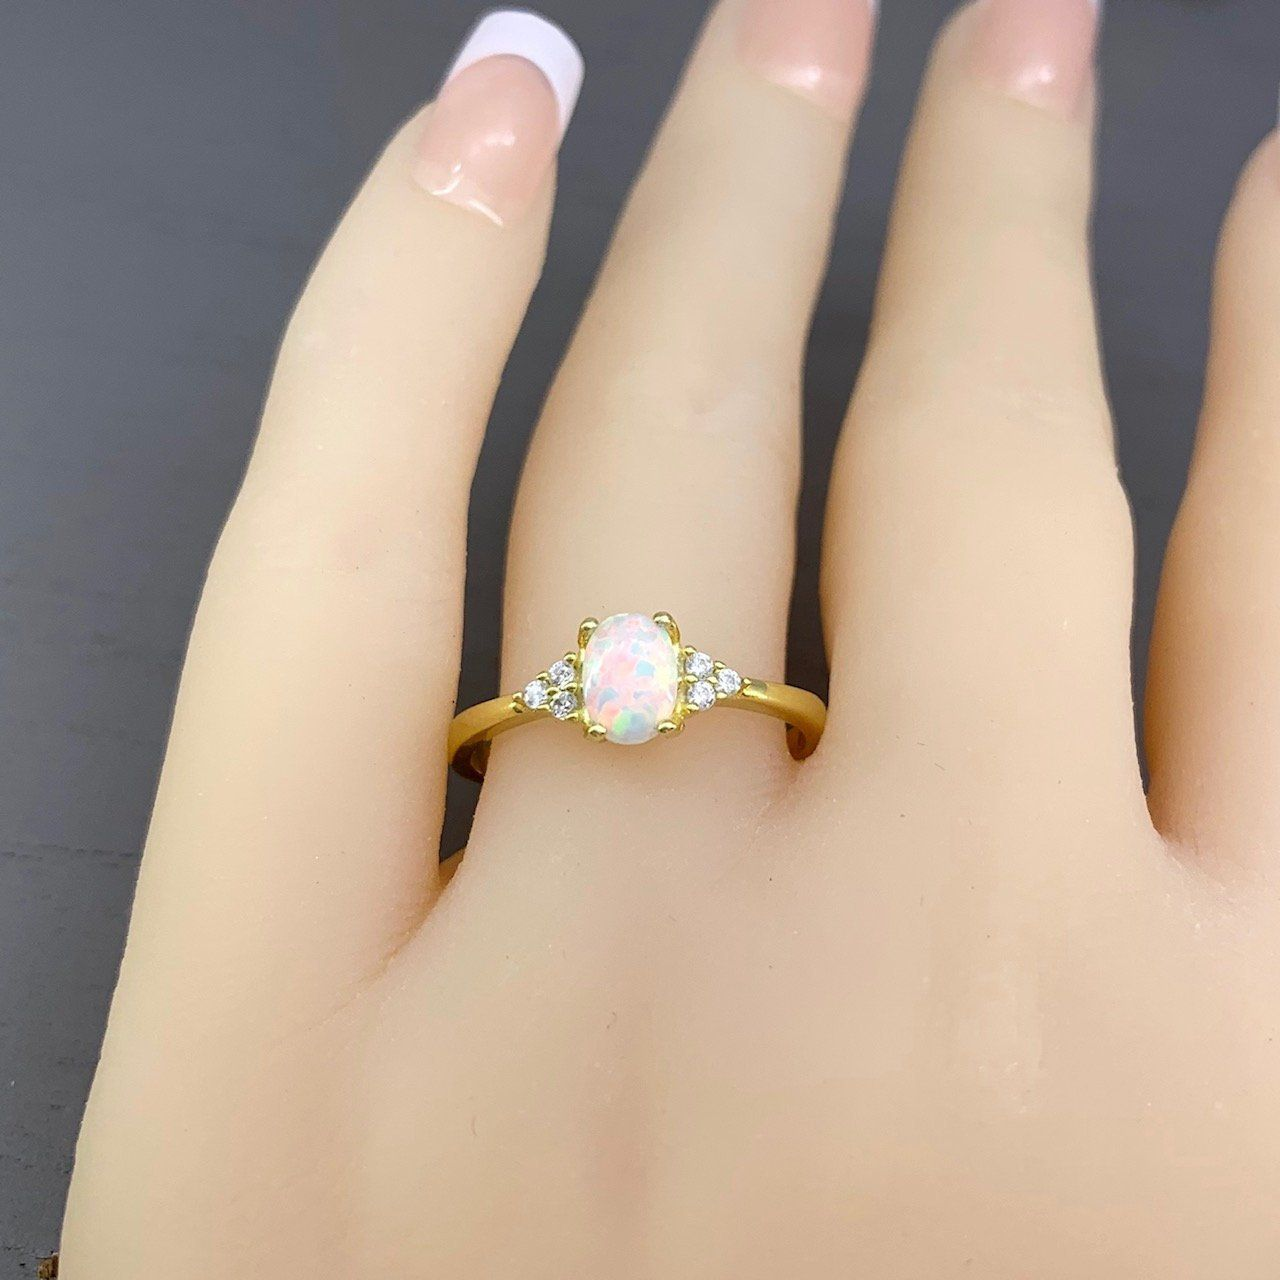 Yellow Gold White Fire Opal Ring Oval White Fire Opal Oval Simulated Diamond Three Stone Promise Engagement Sterling Silver Wedding Ring